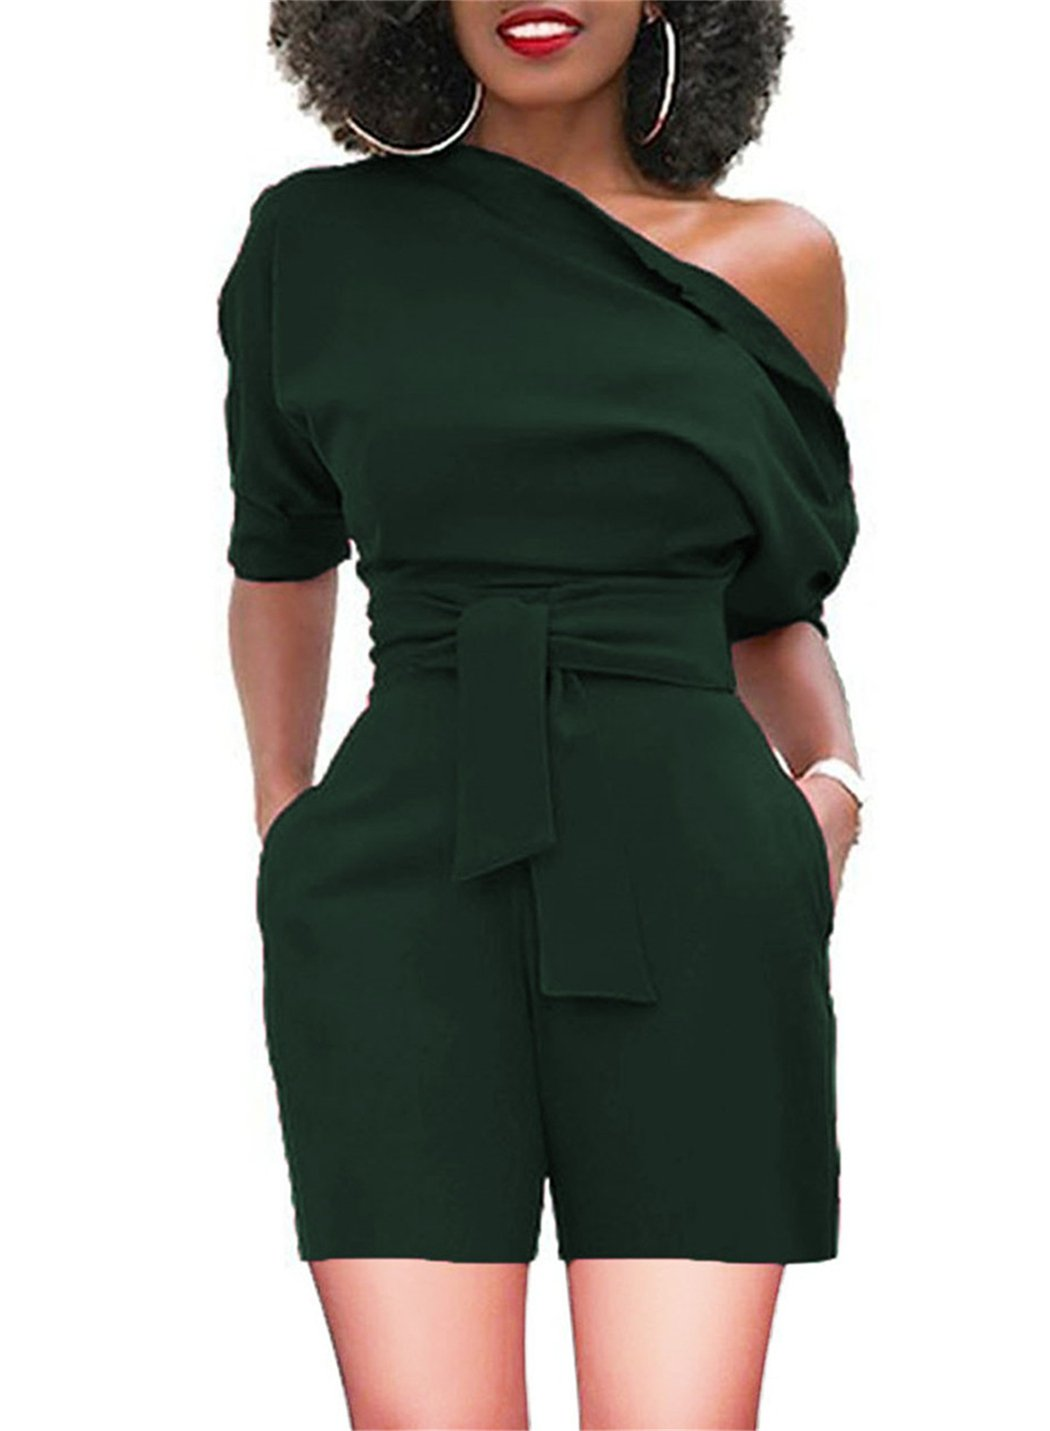 Women's One Off Shoulder Cocktail Short Rompers Pockets Green Small